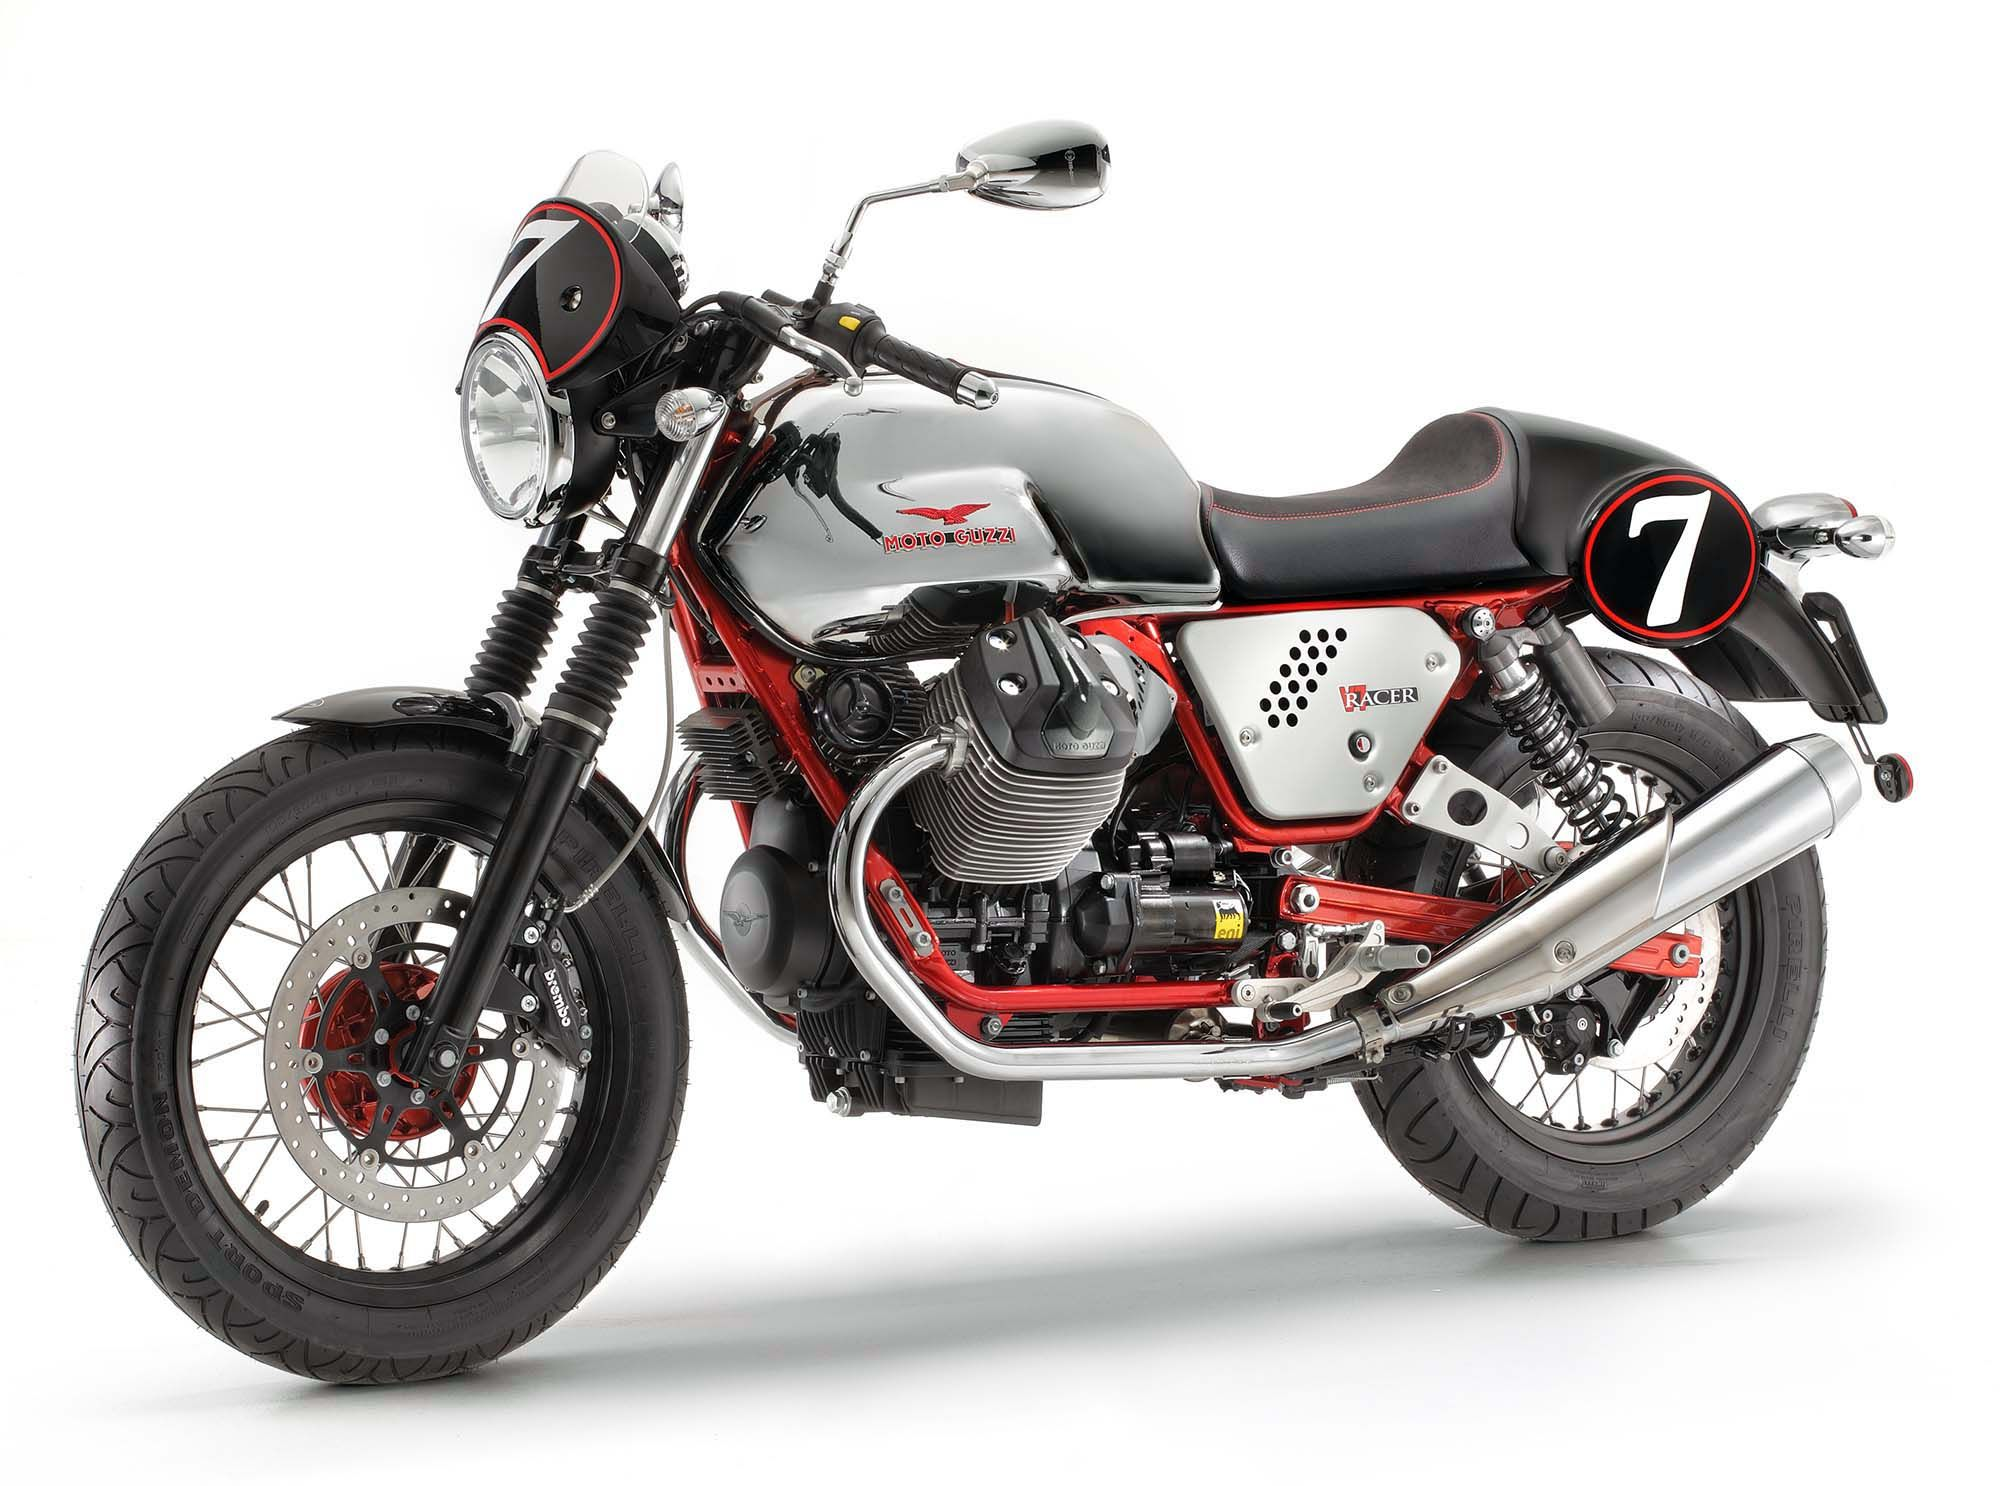 Top 10 Most Expensive Motorcycle Brands In The World Moto Guzzi